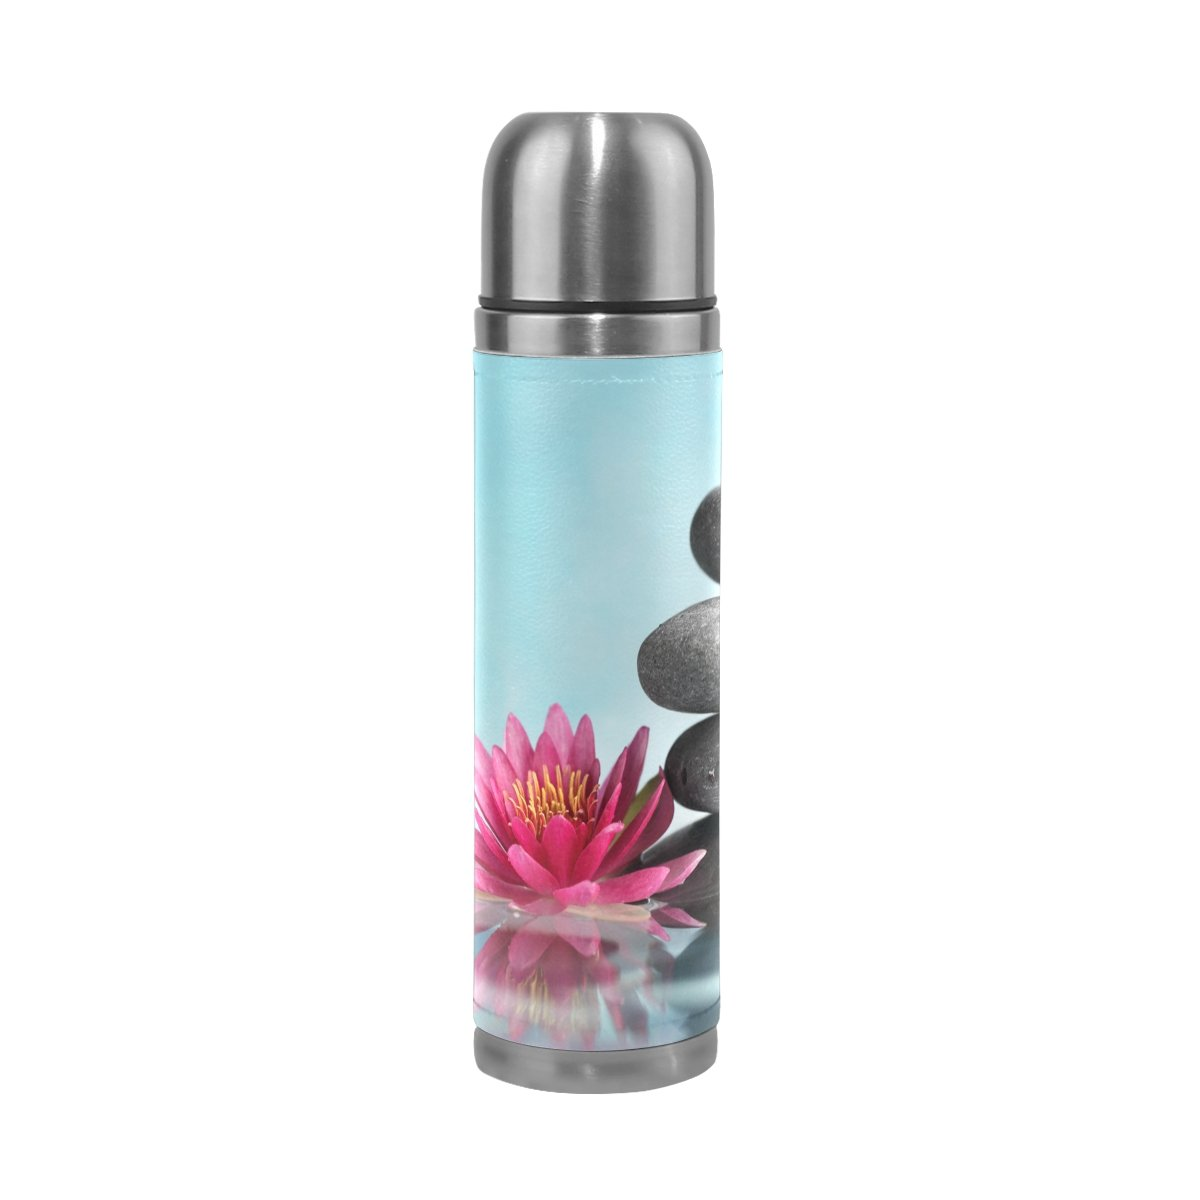 YZGO Vacuum Water Bottle Coffee Mug PU Leather Spa Life Water Lily Zen Leak-proof Double Walled Stainless Steel Cup Travel - Unique Custom Birthday Gift